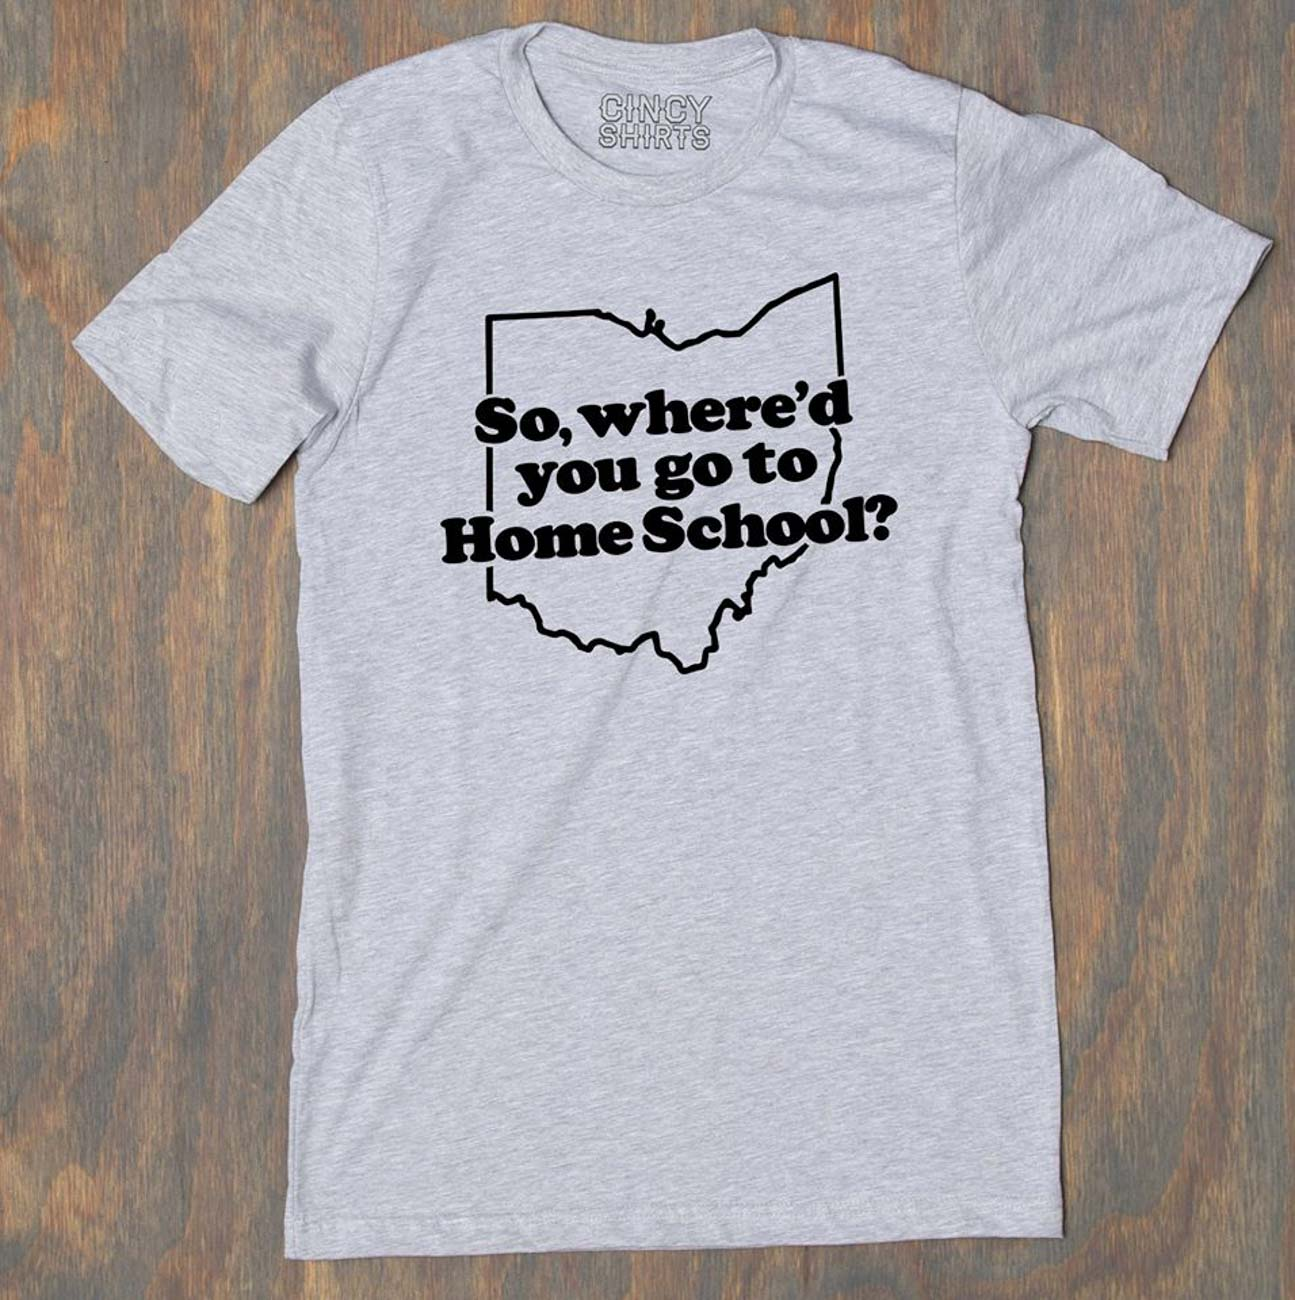 Order your shirts, masks, and other gifts and apparel online at cincyshirts.com. / Image courtesy of Cincy Shirts // Published: 5.30.20